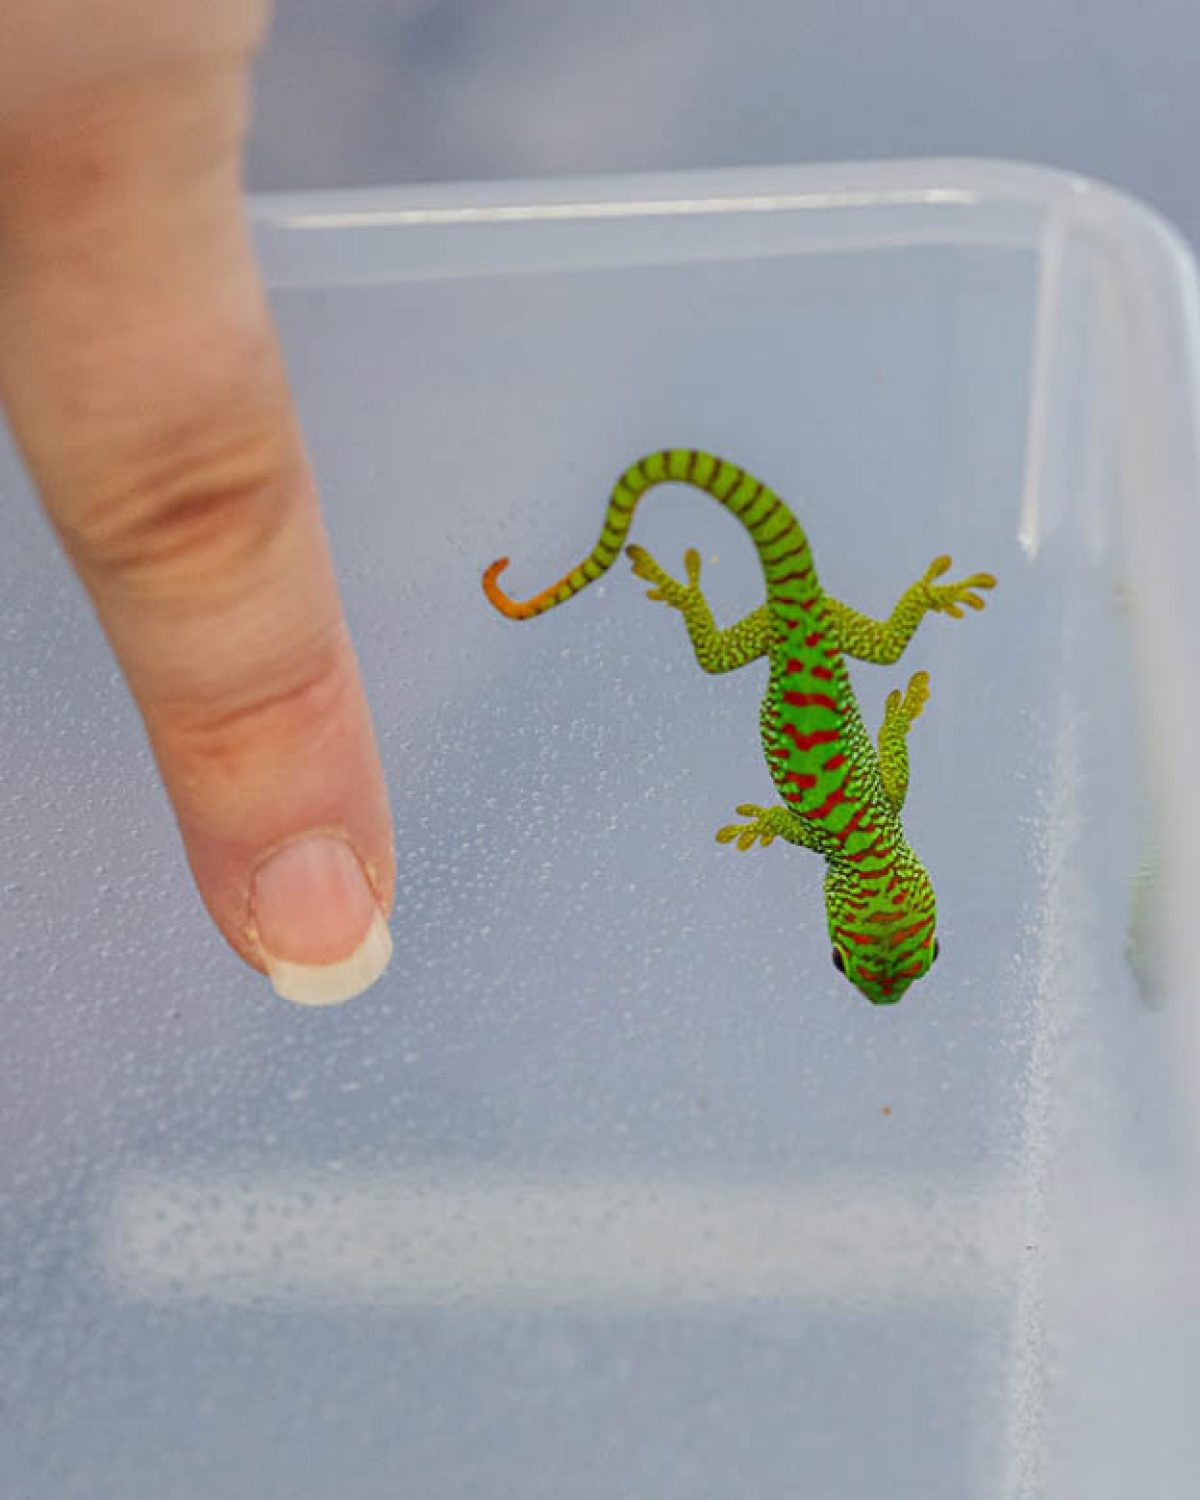 Baby Madagascar Giant Day Gecko crawling on the side of a container